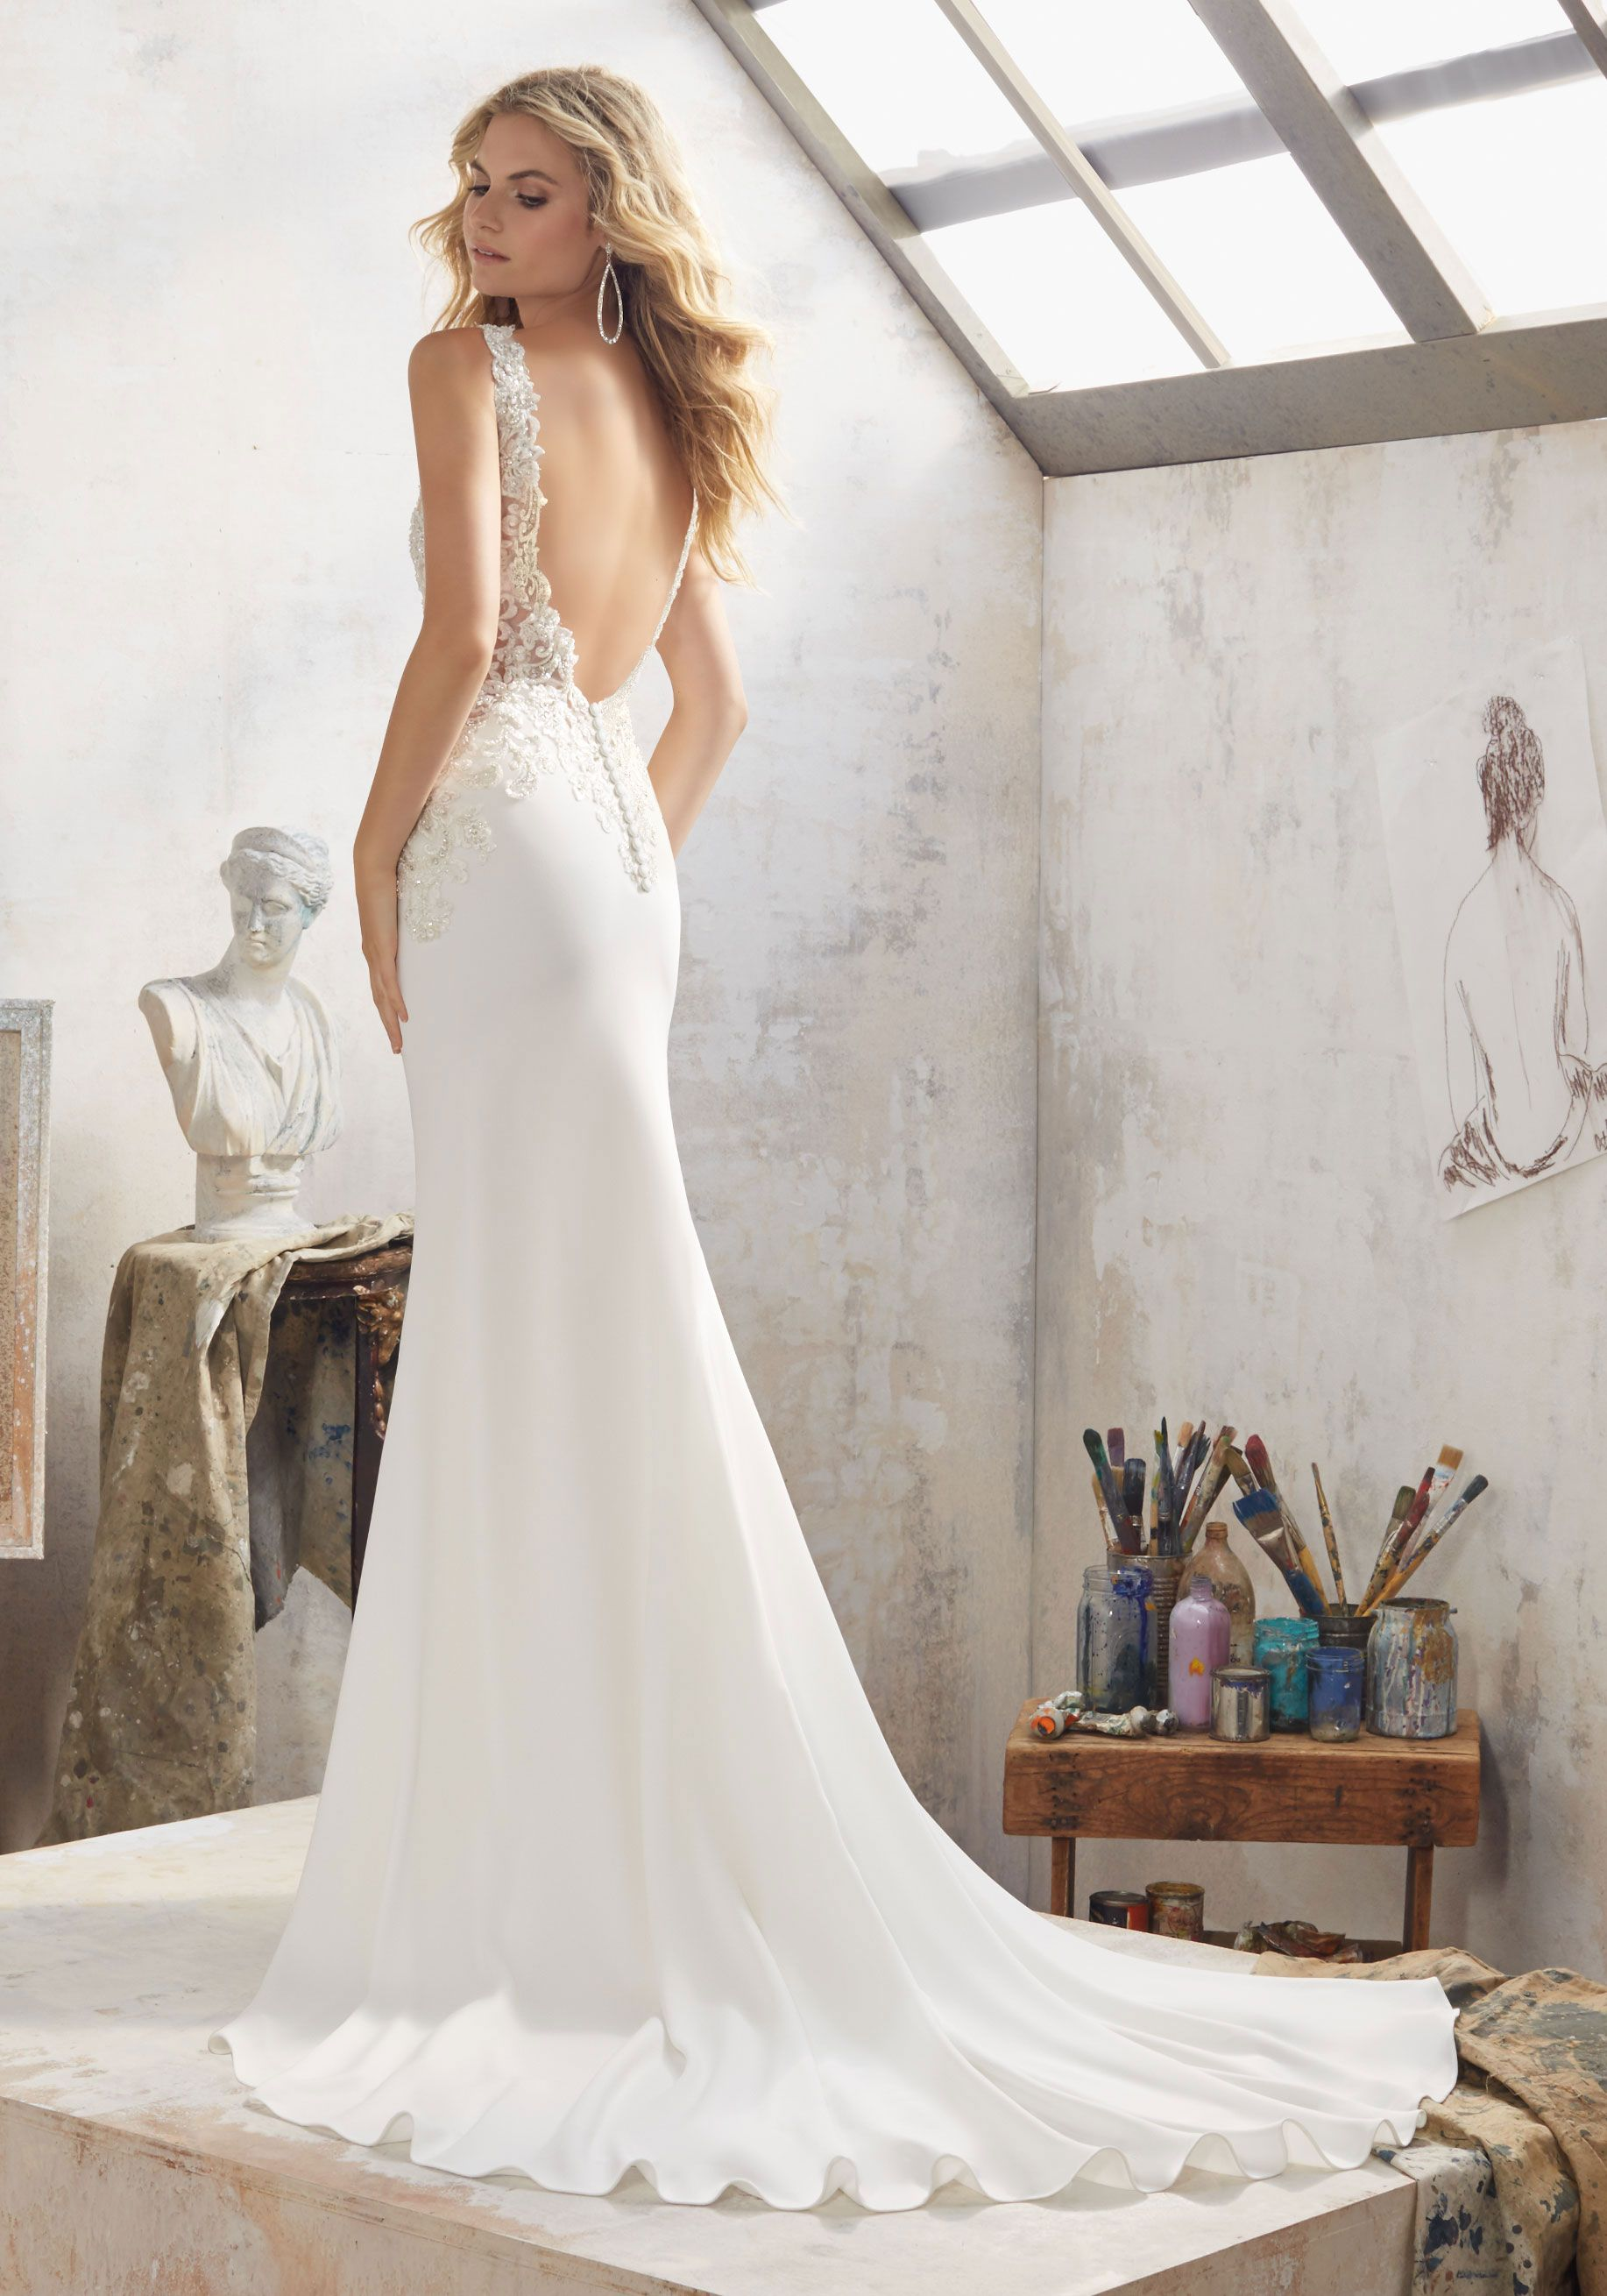 Lovely  Wedding Dresses and Bridal Gowns by Morilee Stunning Sheath Bridal Dress with Crystals on the Bodice and the Open Back and Illusion Cutouts at the